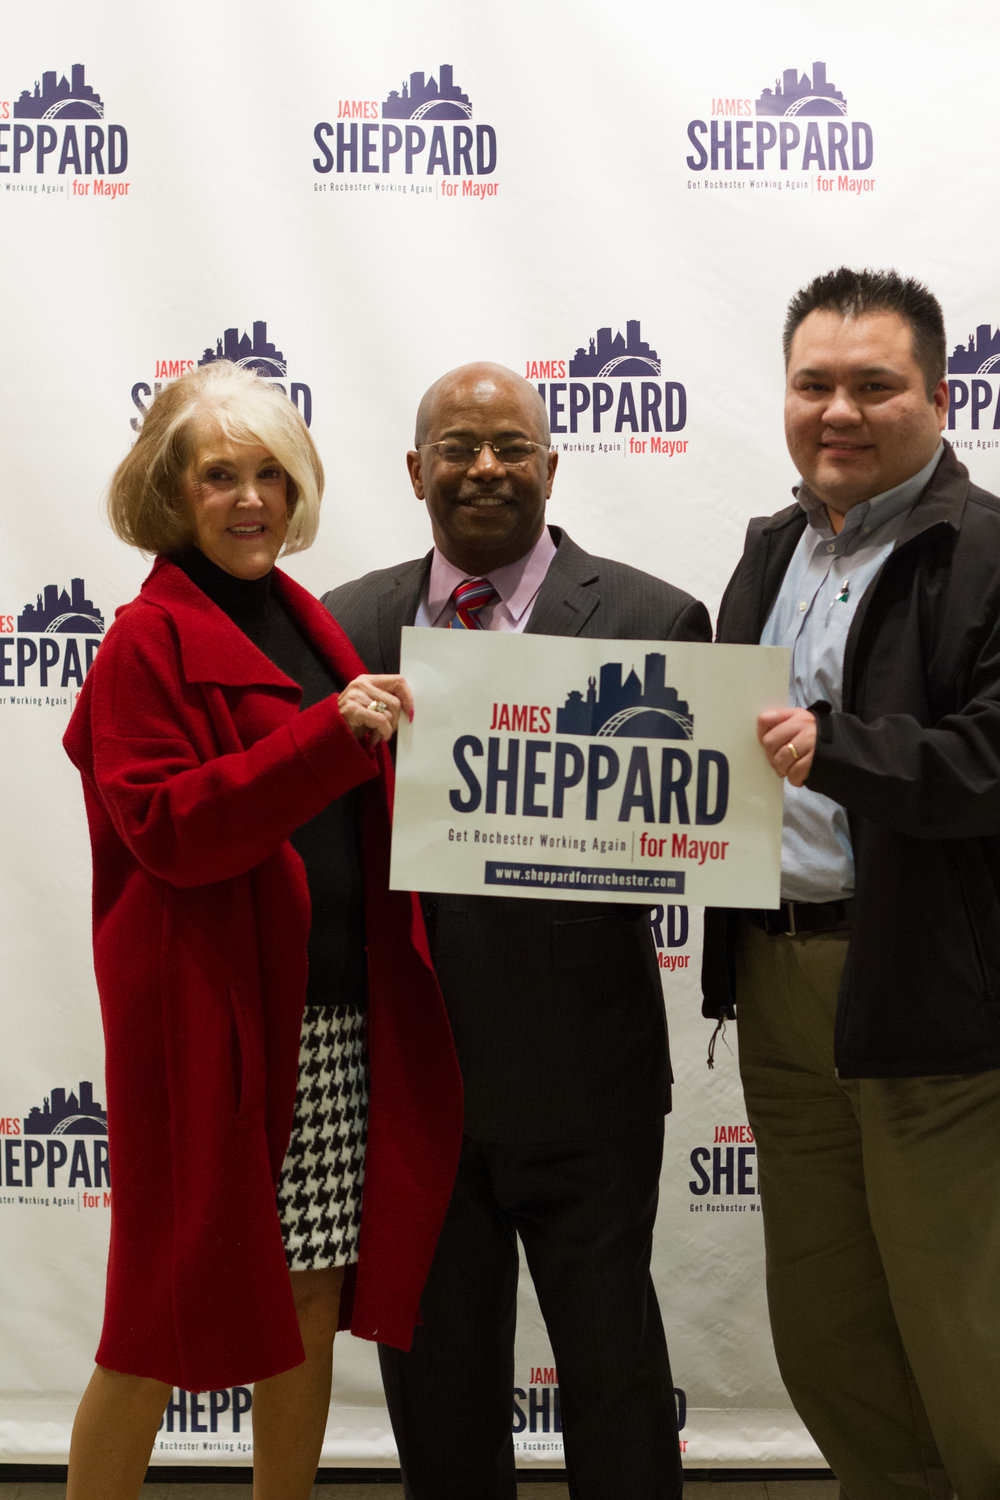 I_Stand_With_Shep_Signs-0018.jpg